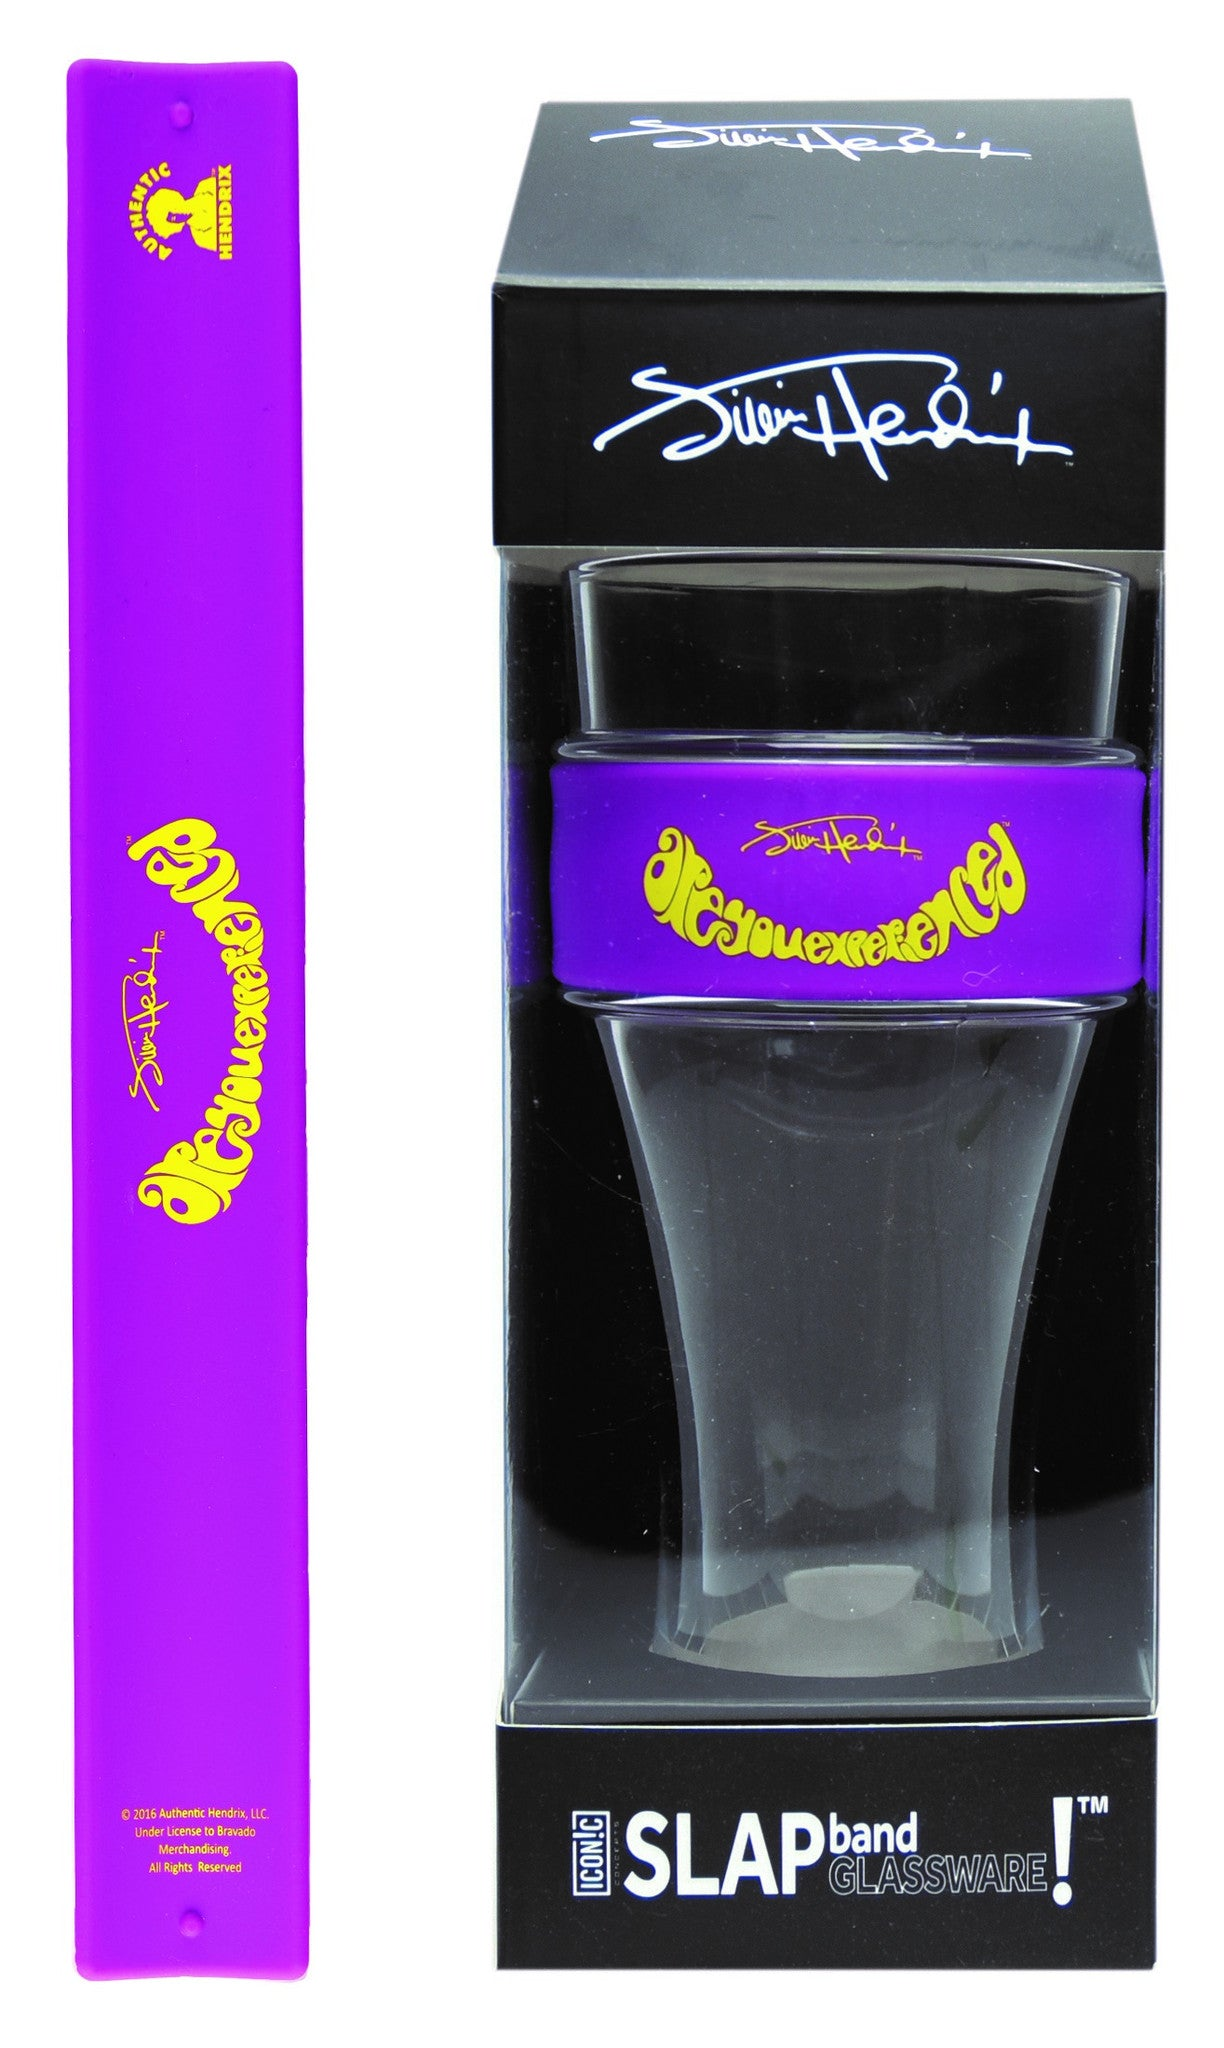 "Jimi Hendrix Slap Band Glassware - Single Pack with Slap Band Jimi Hendrix Purple Band/Yellow ""Are you experienced"""